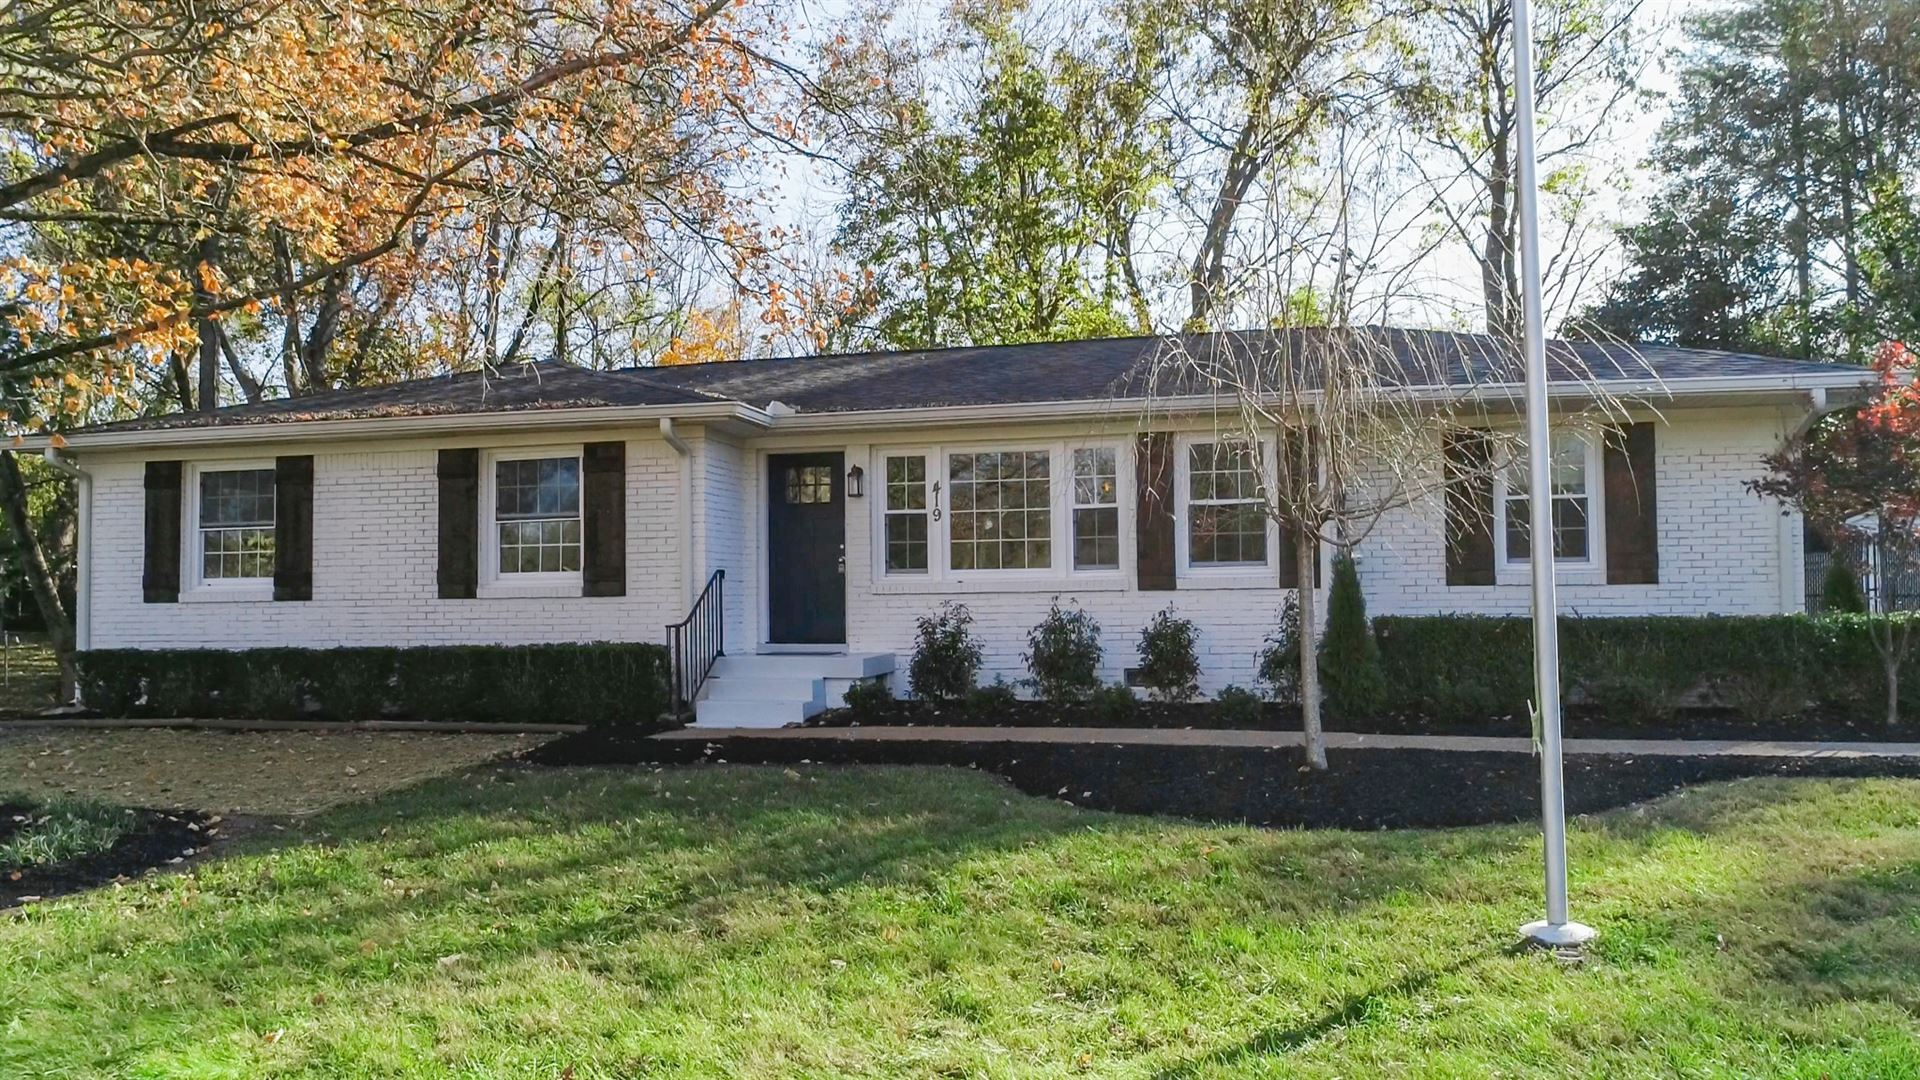 Photo of 419 Figuers Dr, Franklin, TN 37064 (MLS # 2220751)